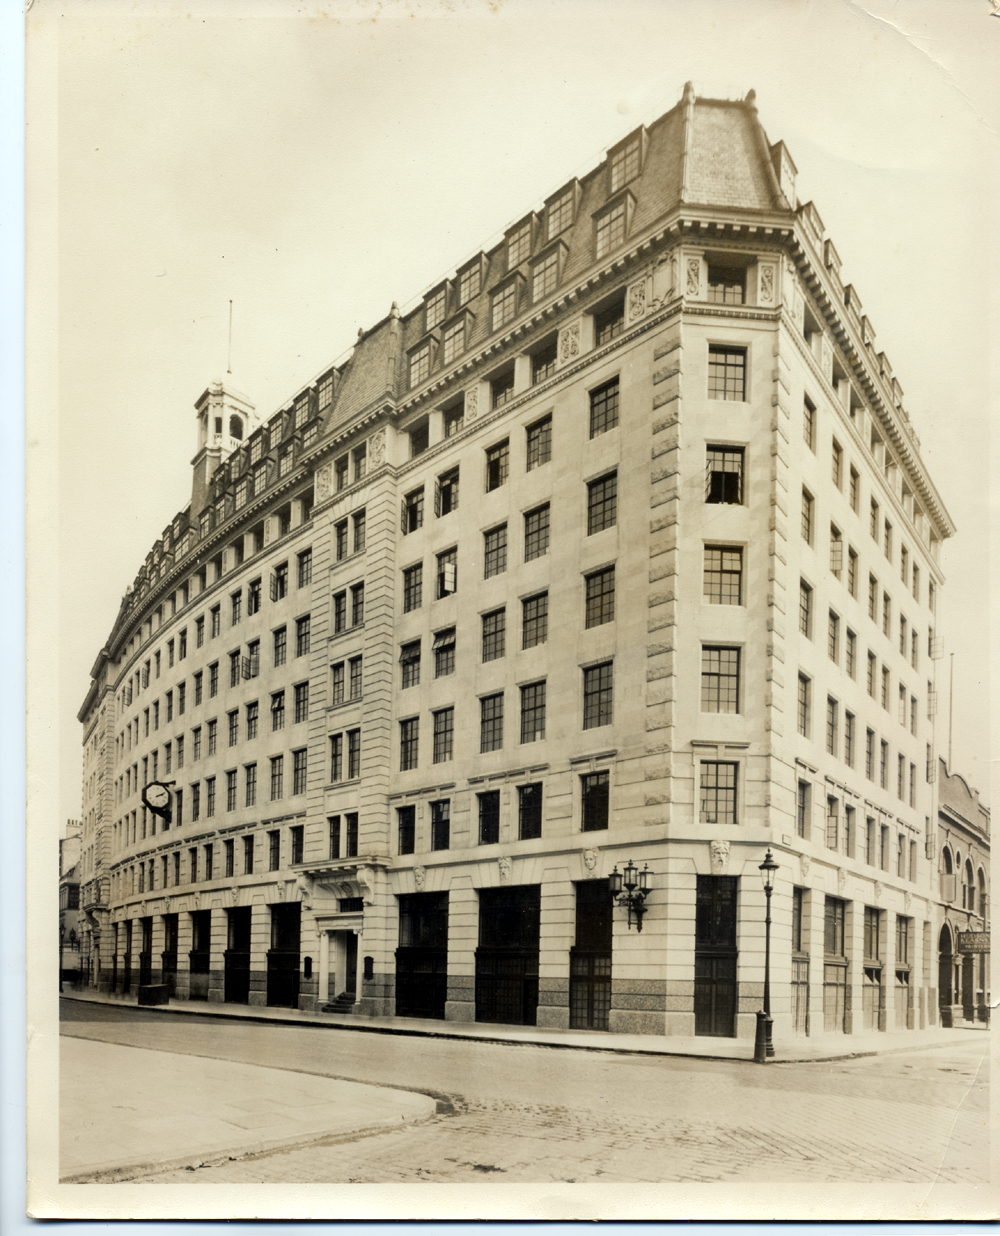 Dorset House in Stamford Street, near Waterloo, was a hotbed of technical magazine publishing in the 1960s. It was here, on the sixth floor, where I worked as a motor cycle journalist